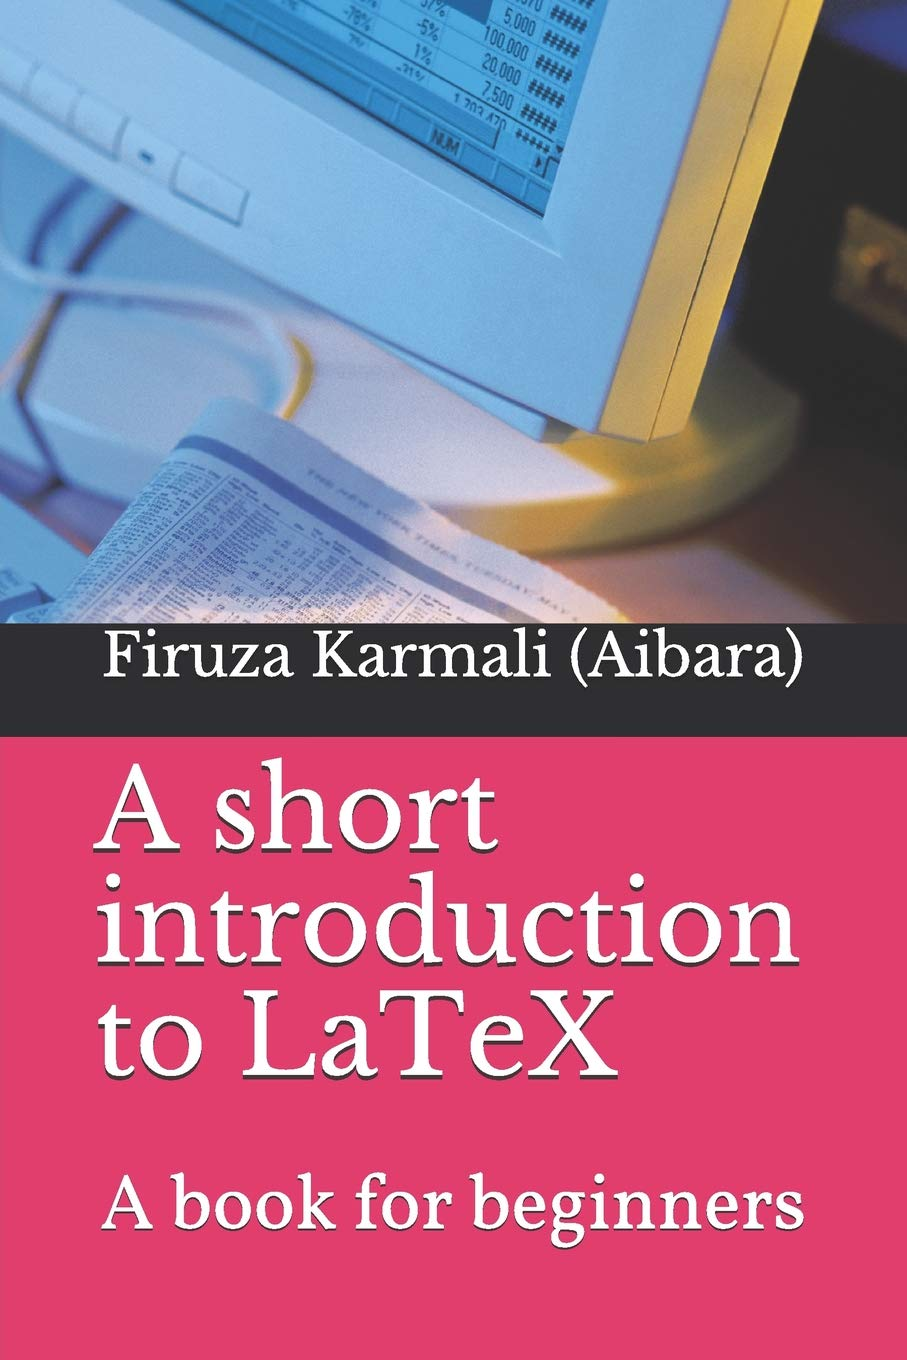 Simplified Introduction To LaTeX